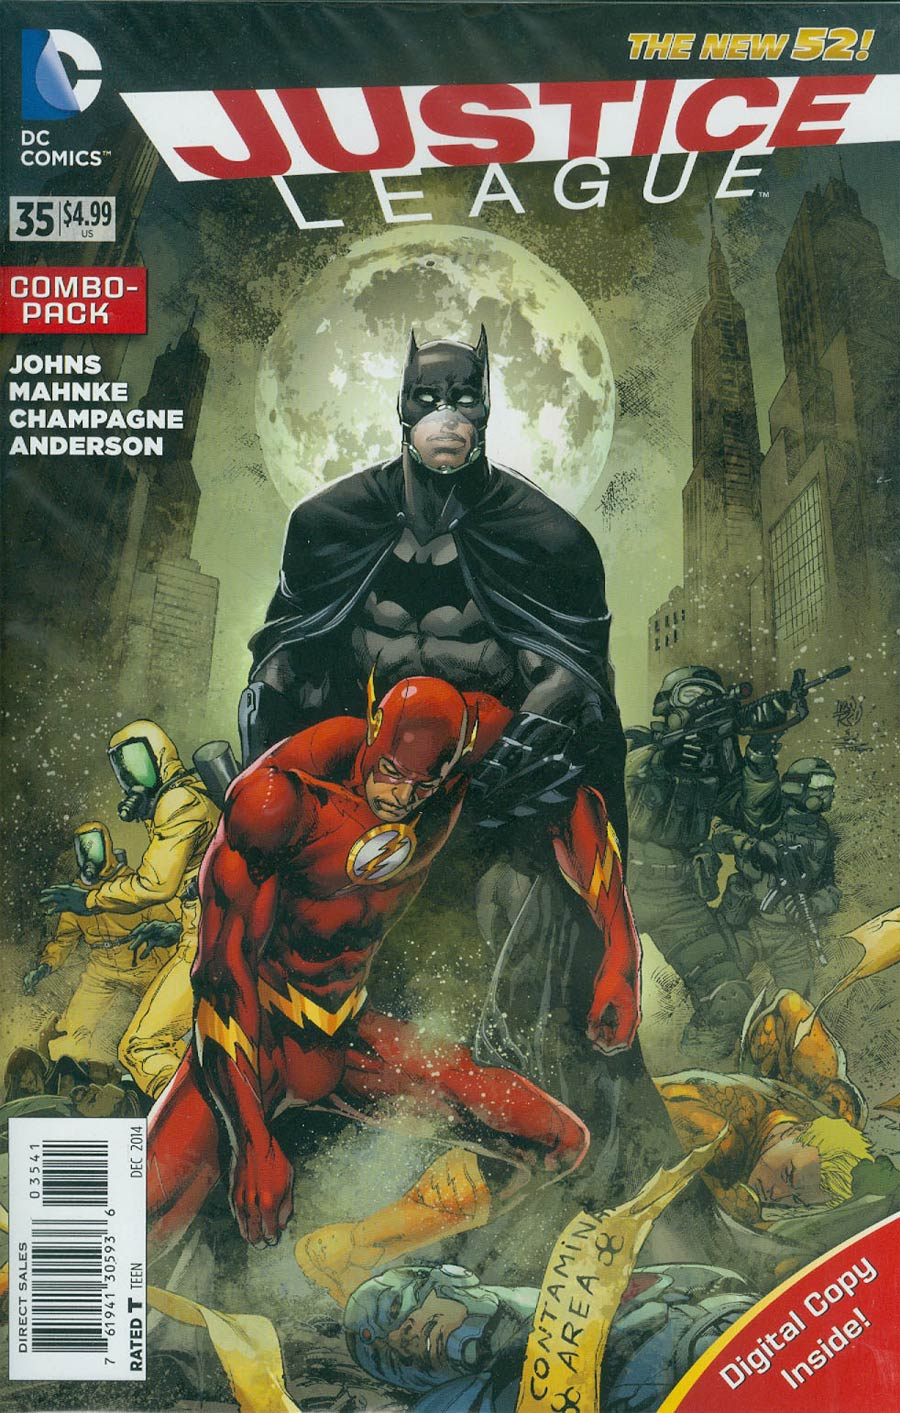 Justice League Vol 2 #35 Cover D Combo Pack Without Polybag